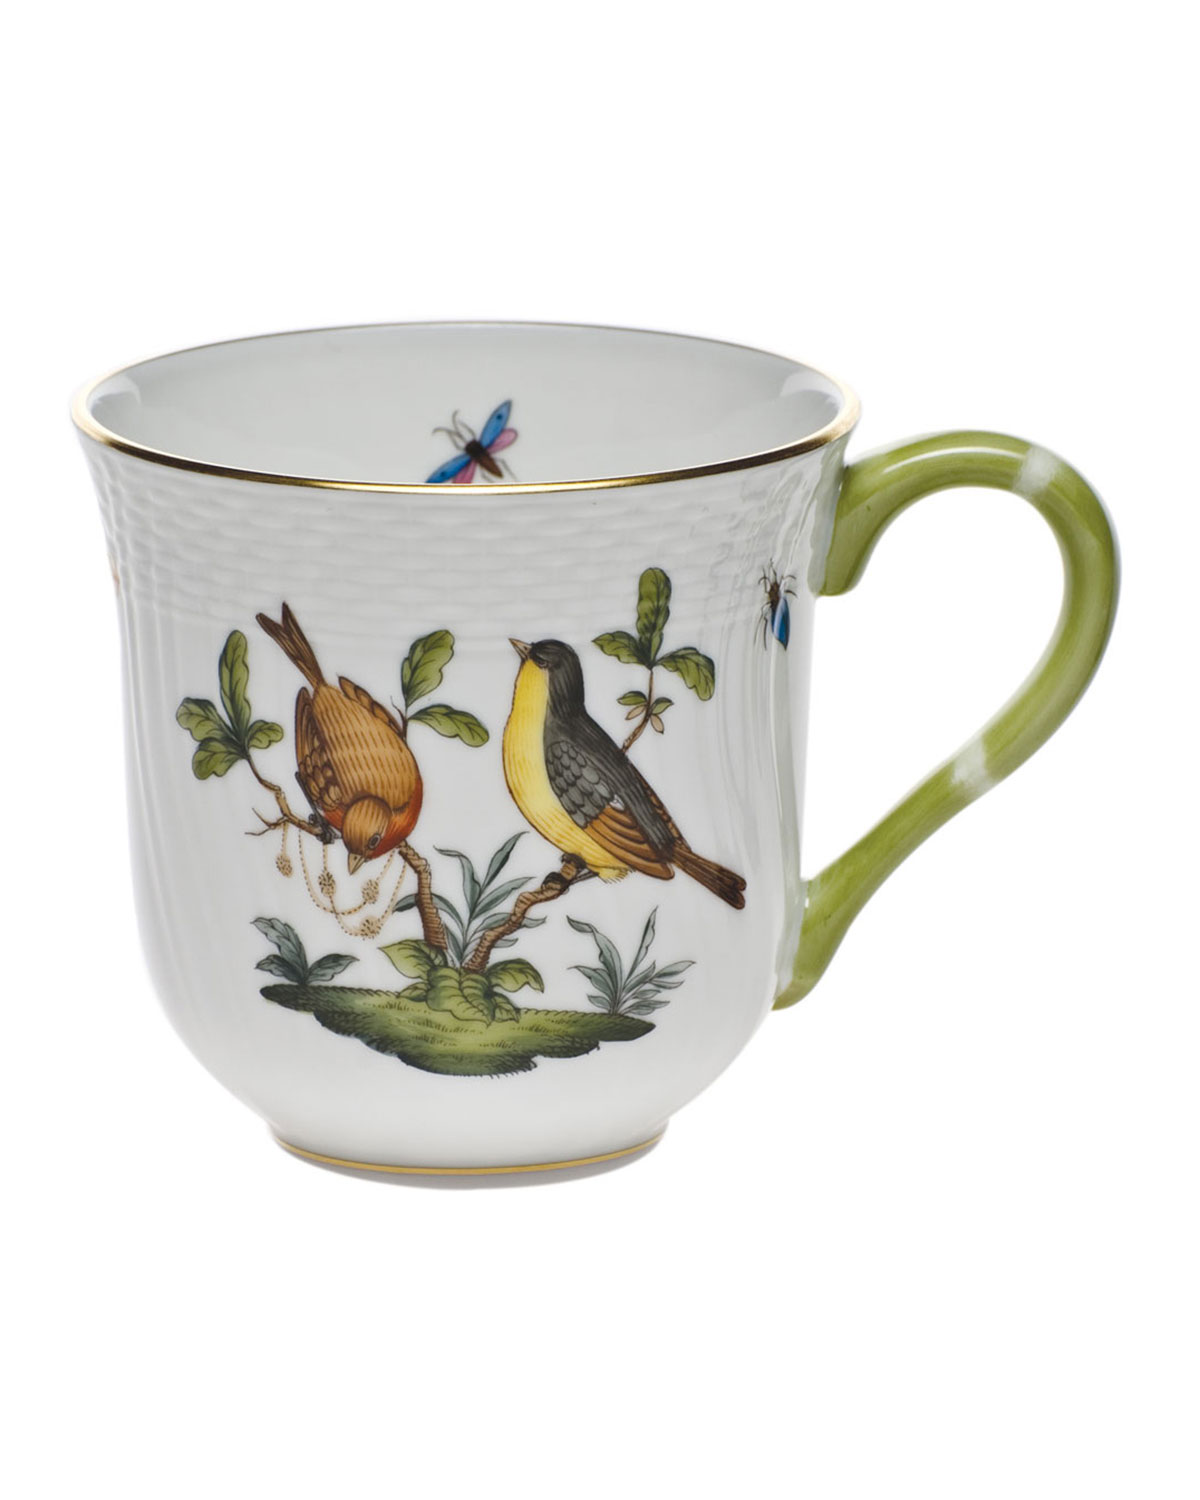 Herend Rothschild Bird Mug #7